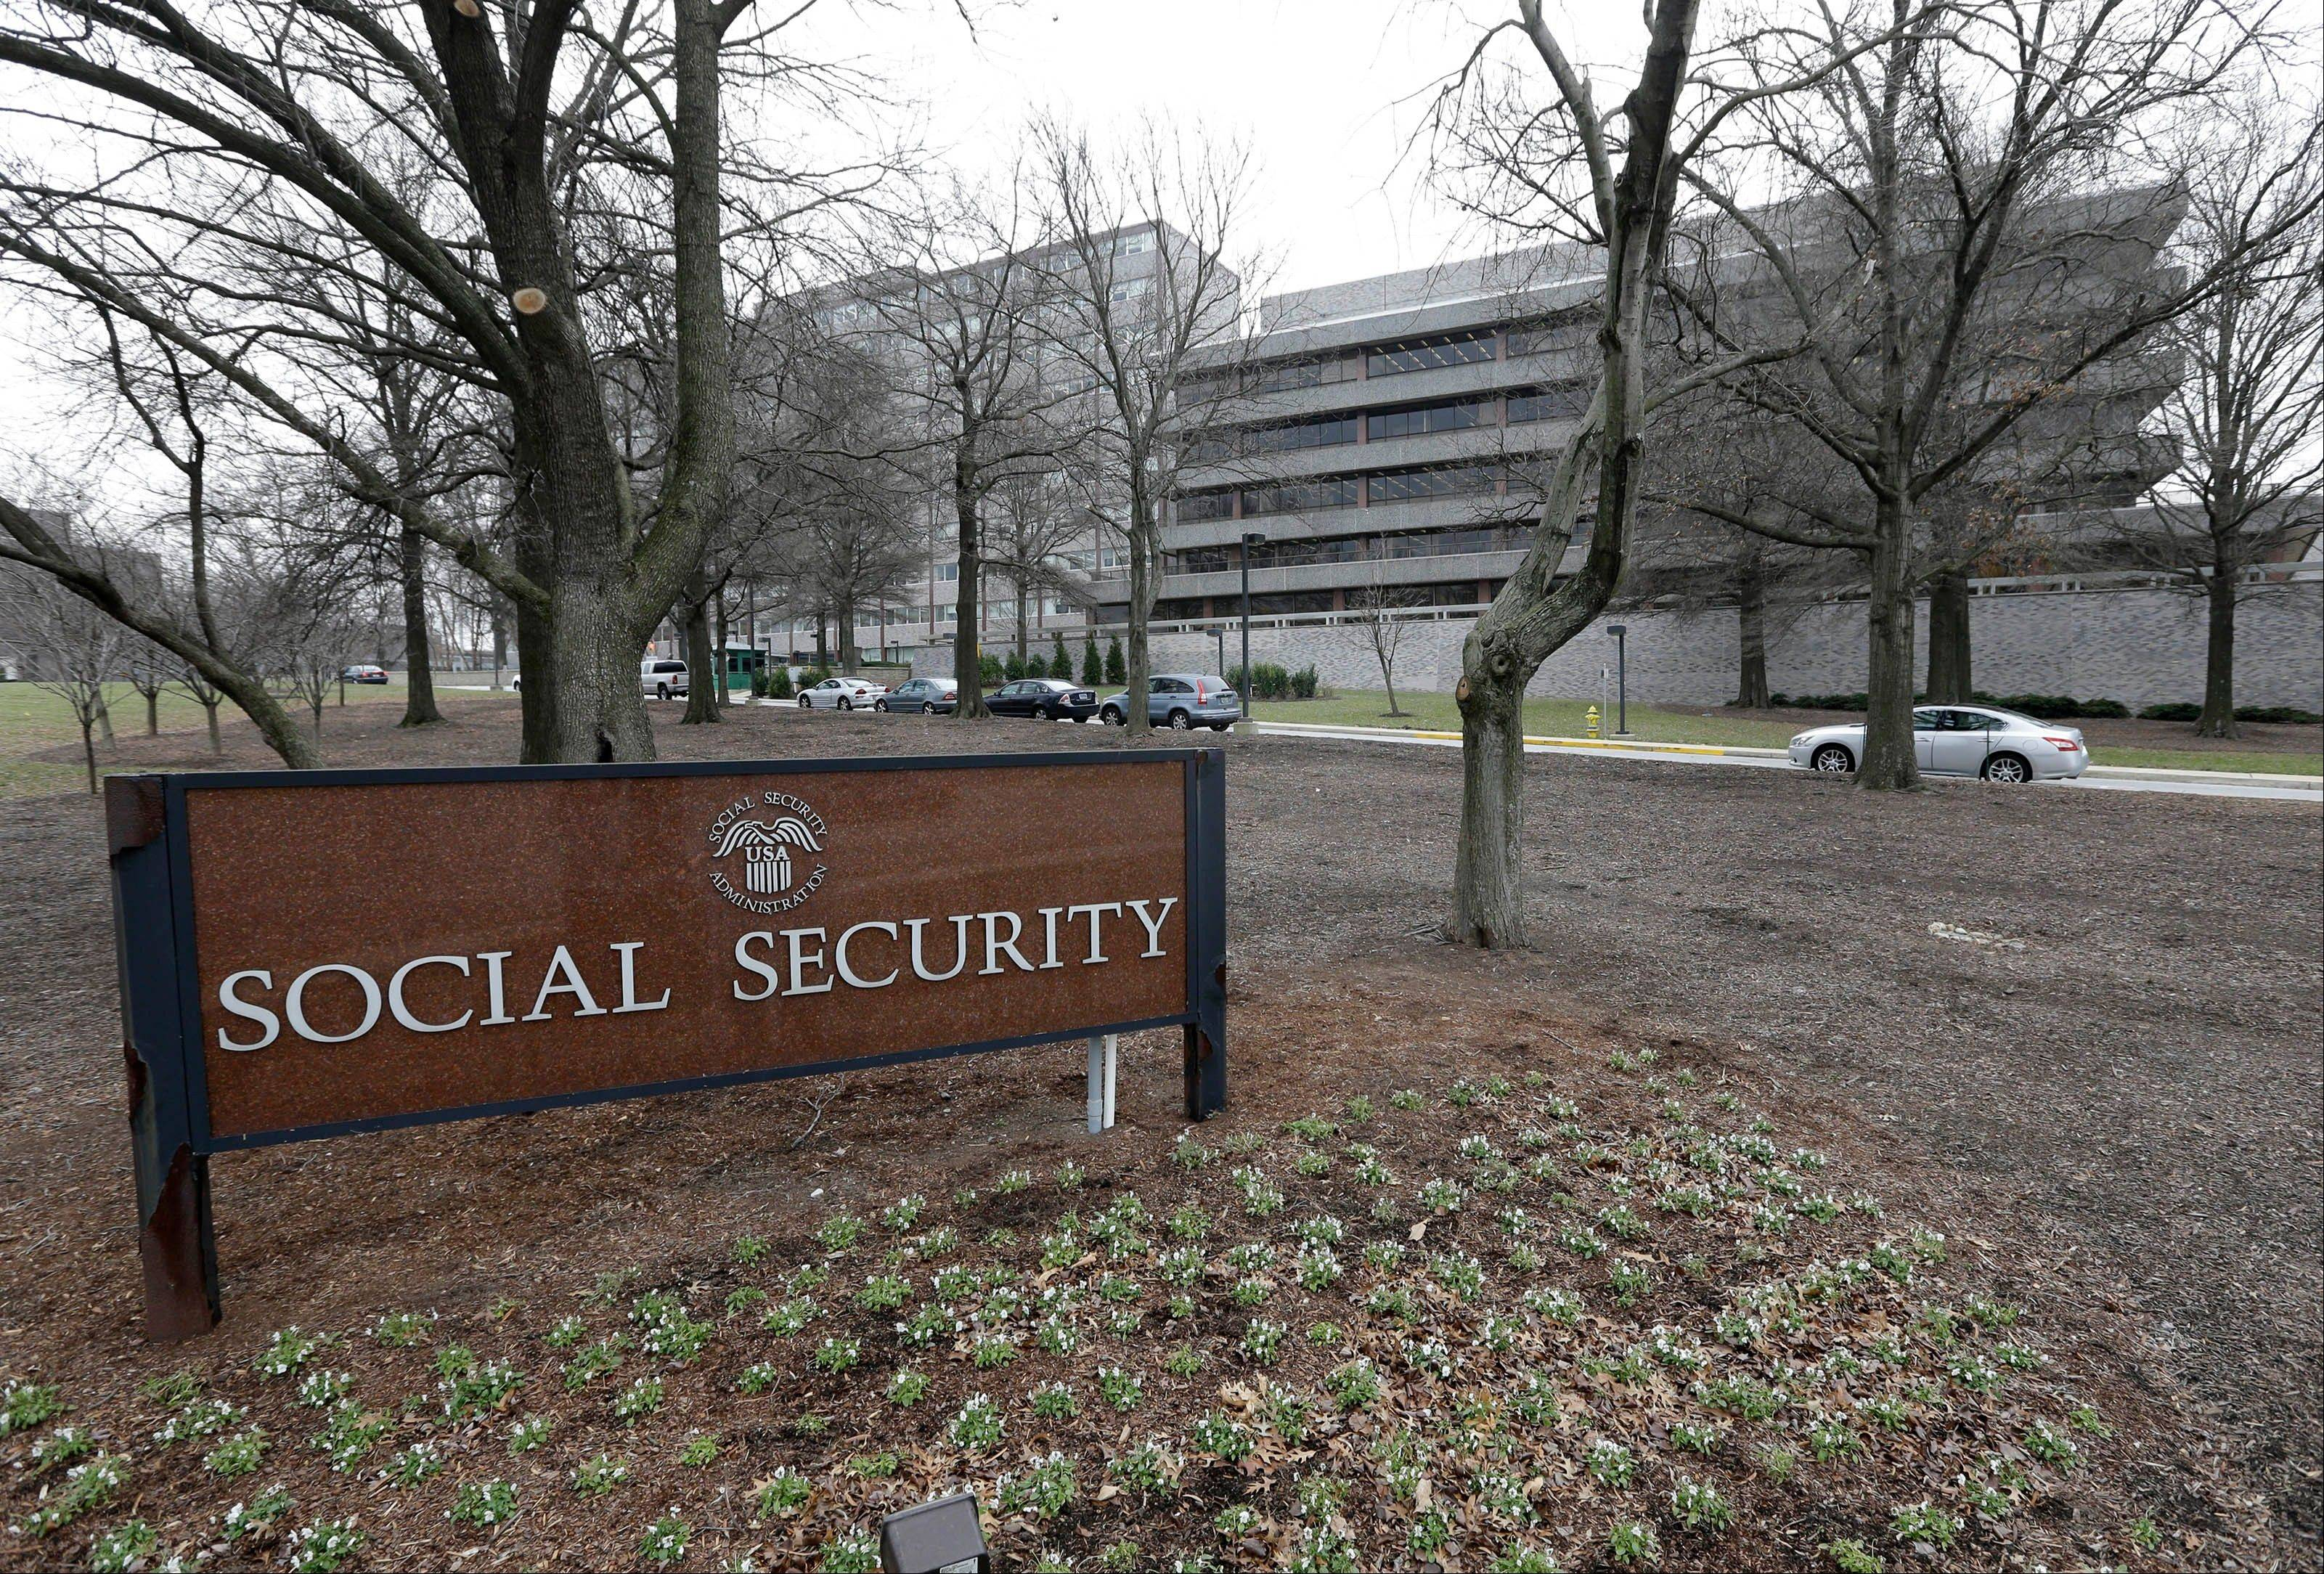 The Social Security Administration�s main campus in Woodlawn, Md.